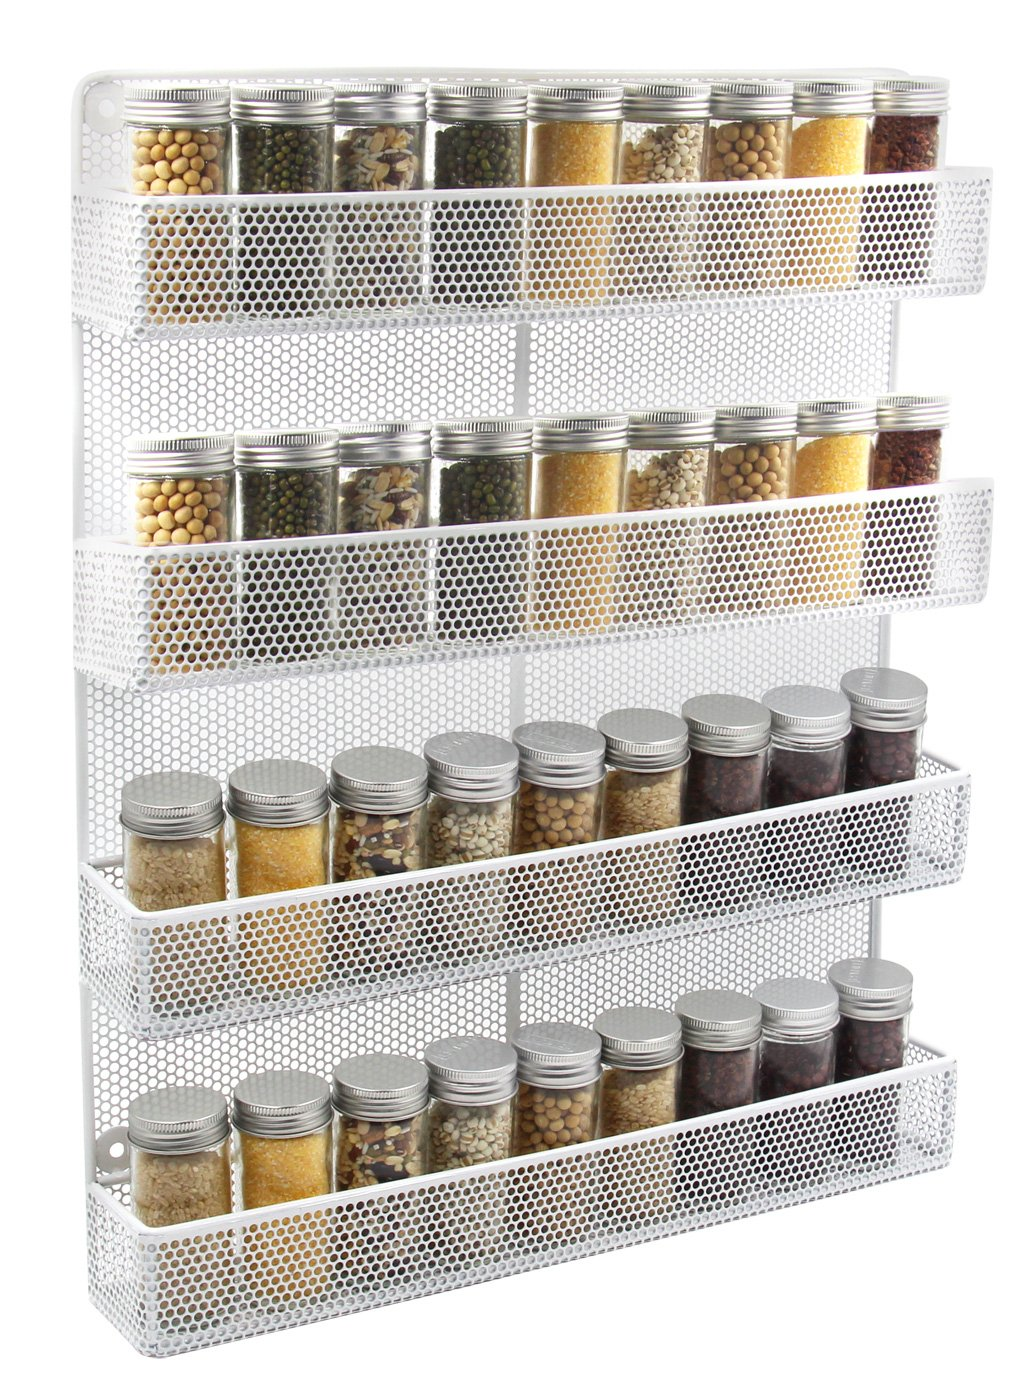 Amazon.com: ESYLIFE 4 Tier Wall Mount Spice Rack Organizer Large Kitchen Spice  Storage Shelf, White: Kitchen & Dining